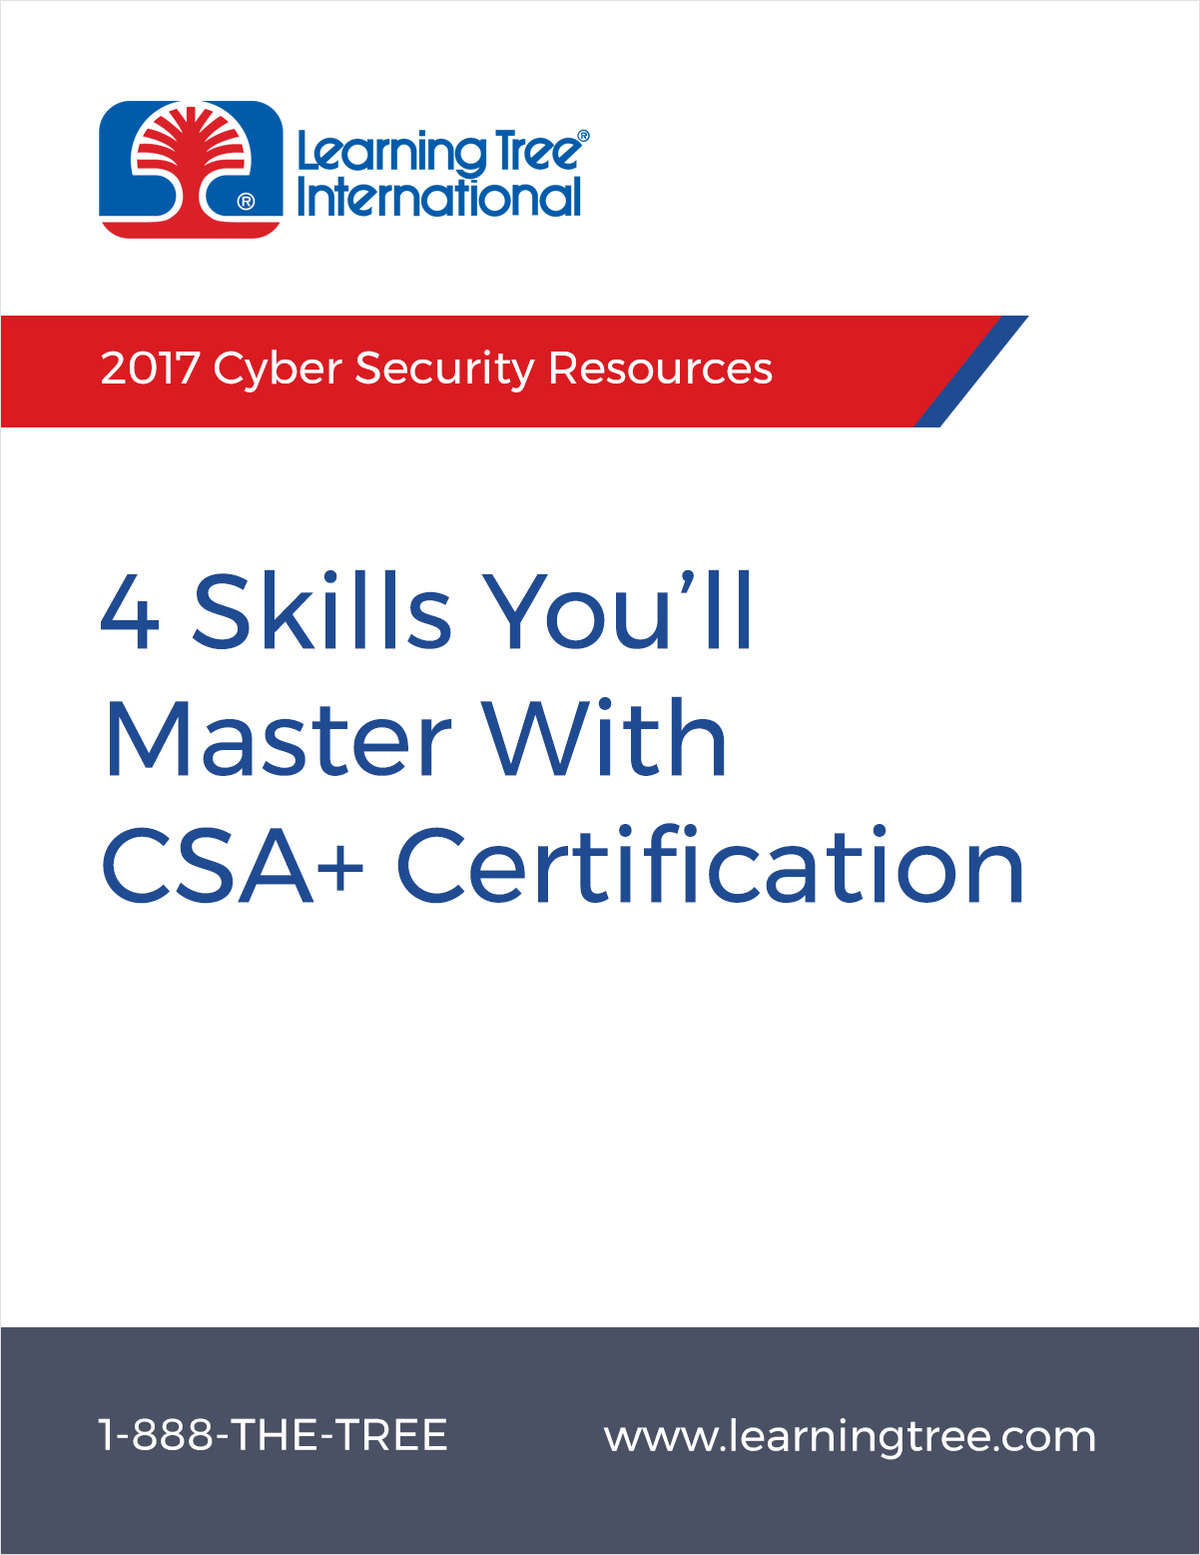 The 4 Skills You Must Master When Becoming CSA+ Certified